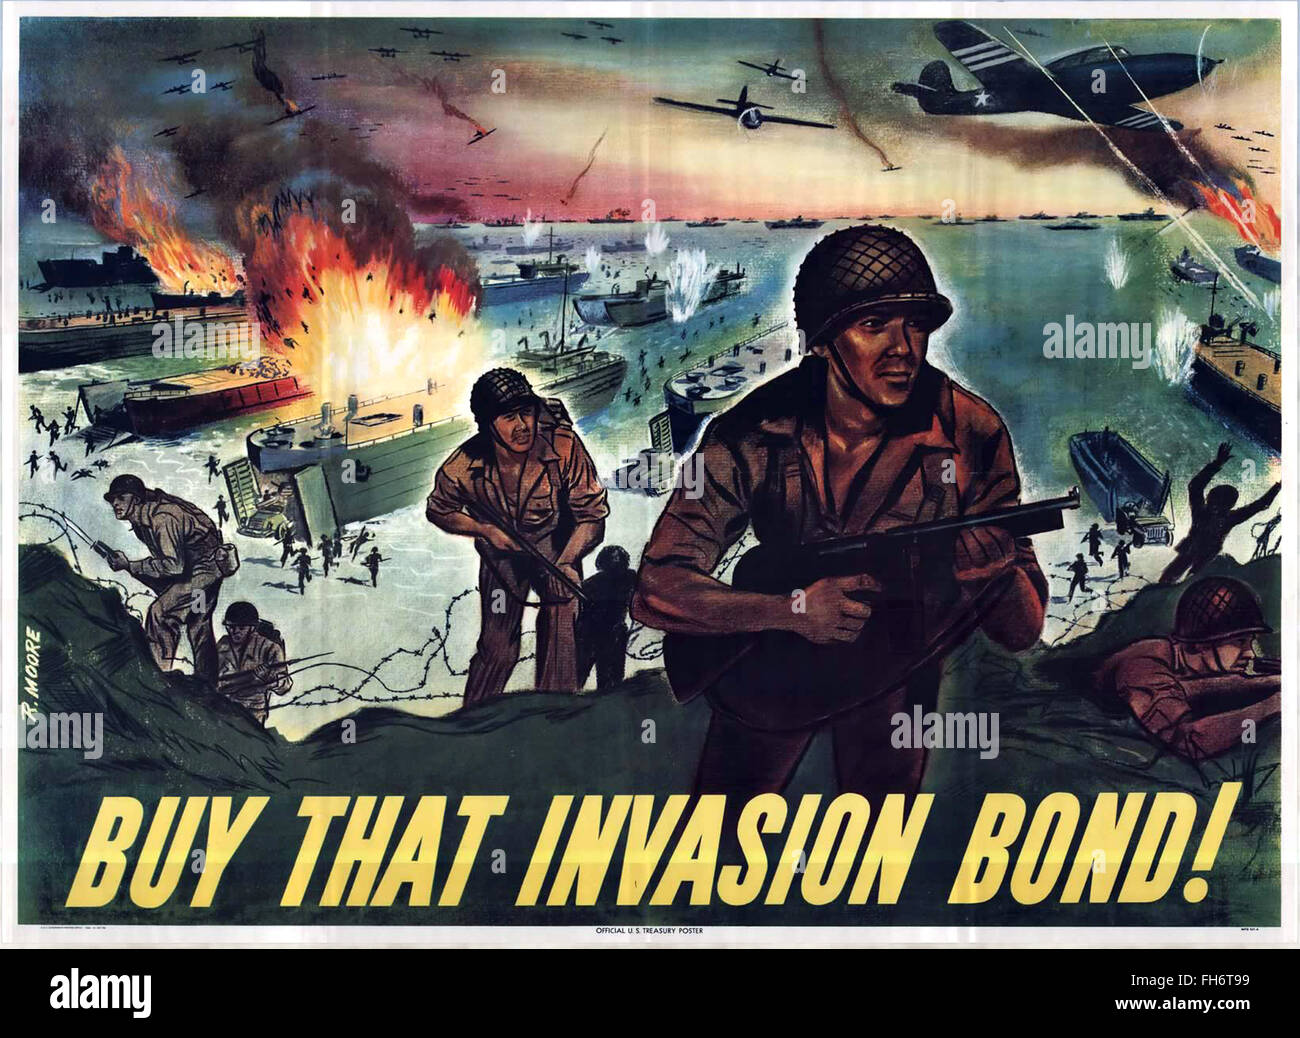 Normandy - Buy That Invasion Bond ! - US Propaganda Poster - WWII - Stock Image